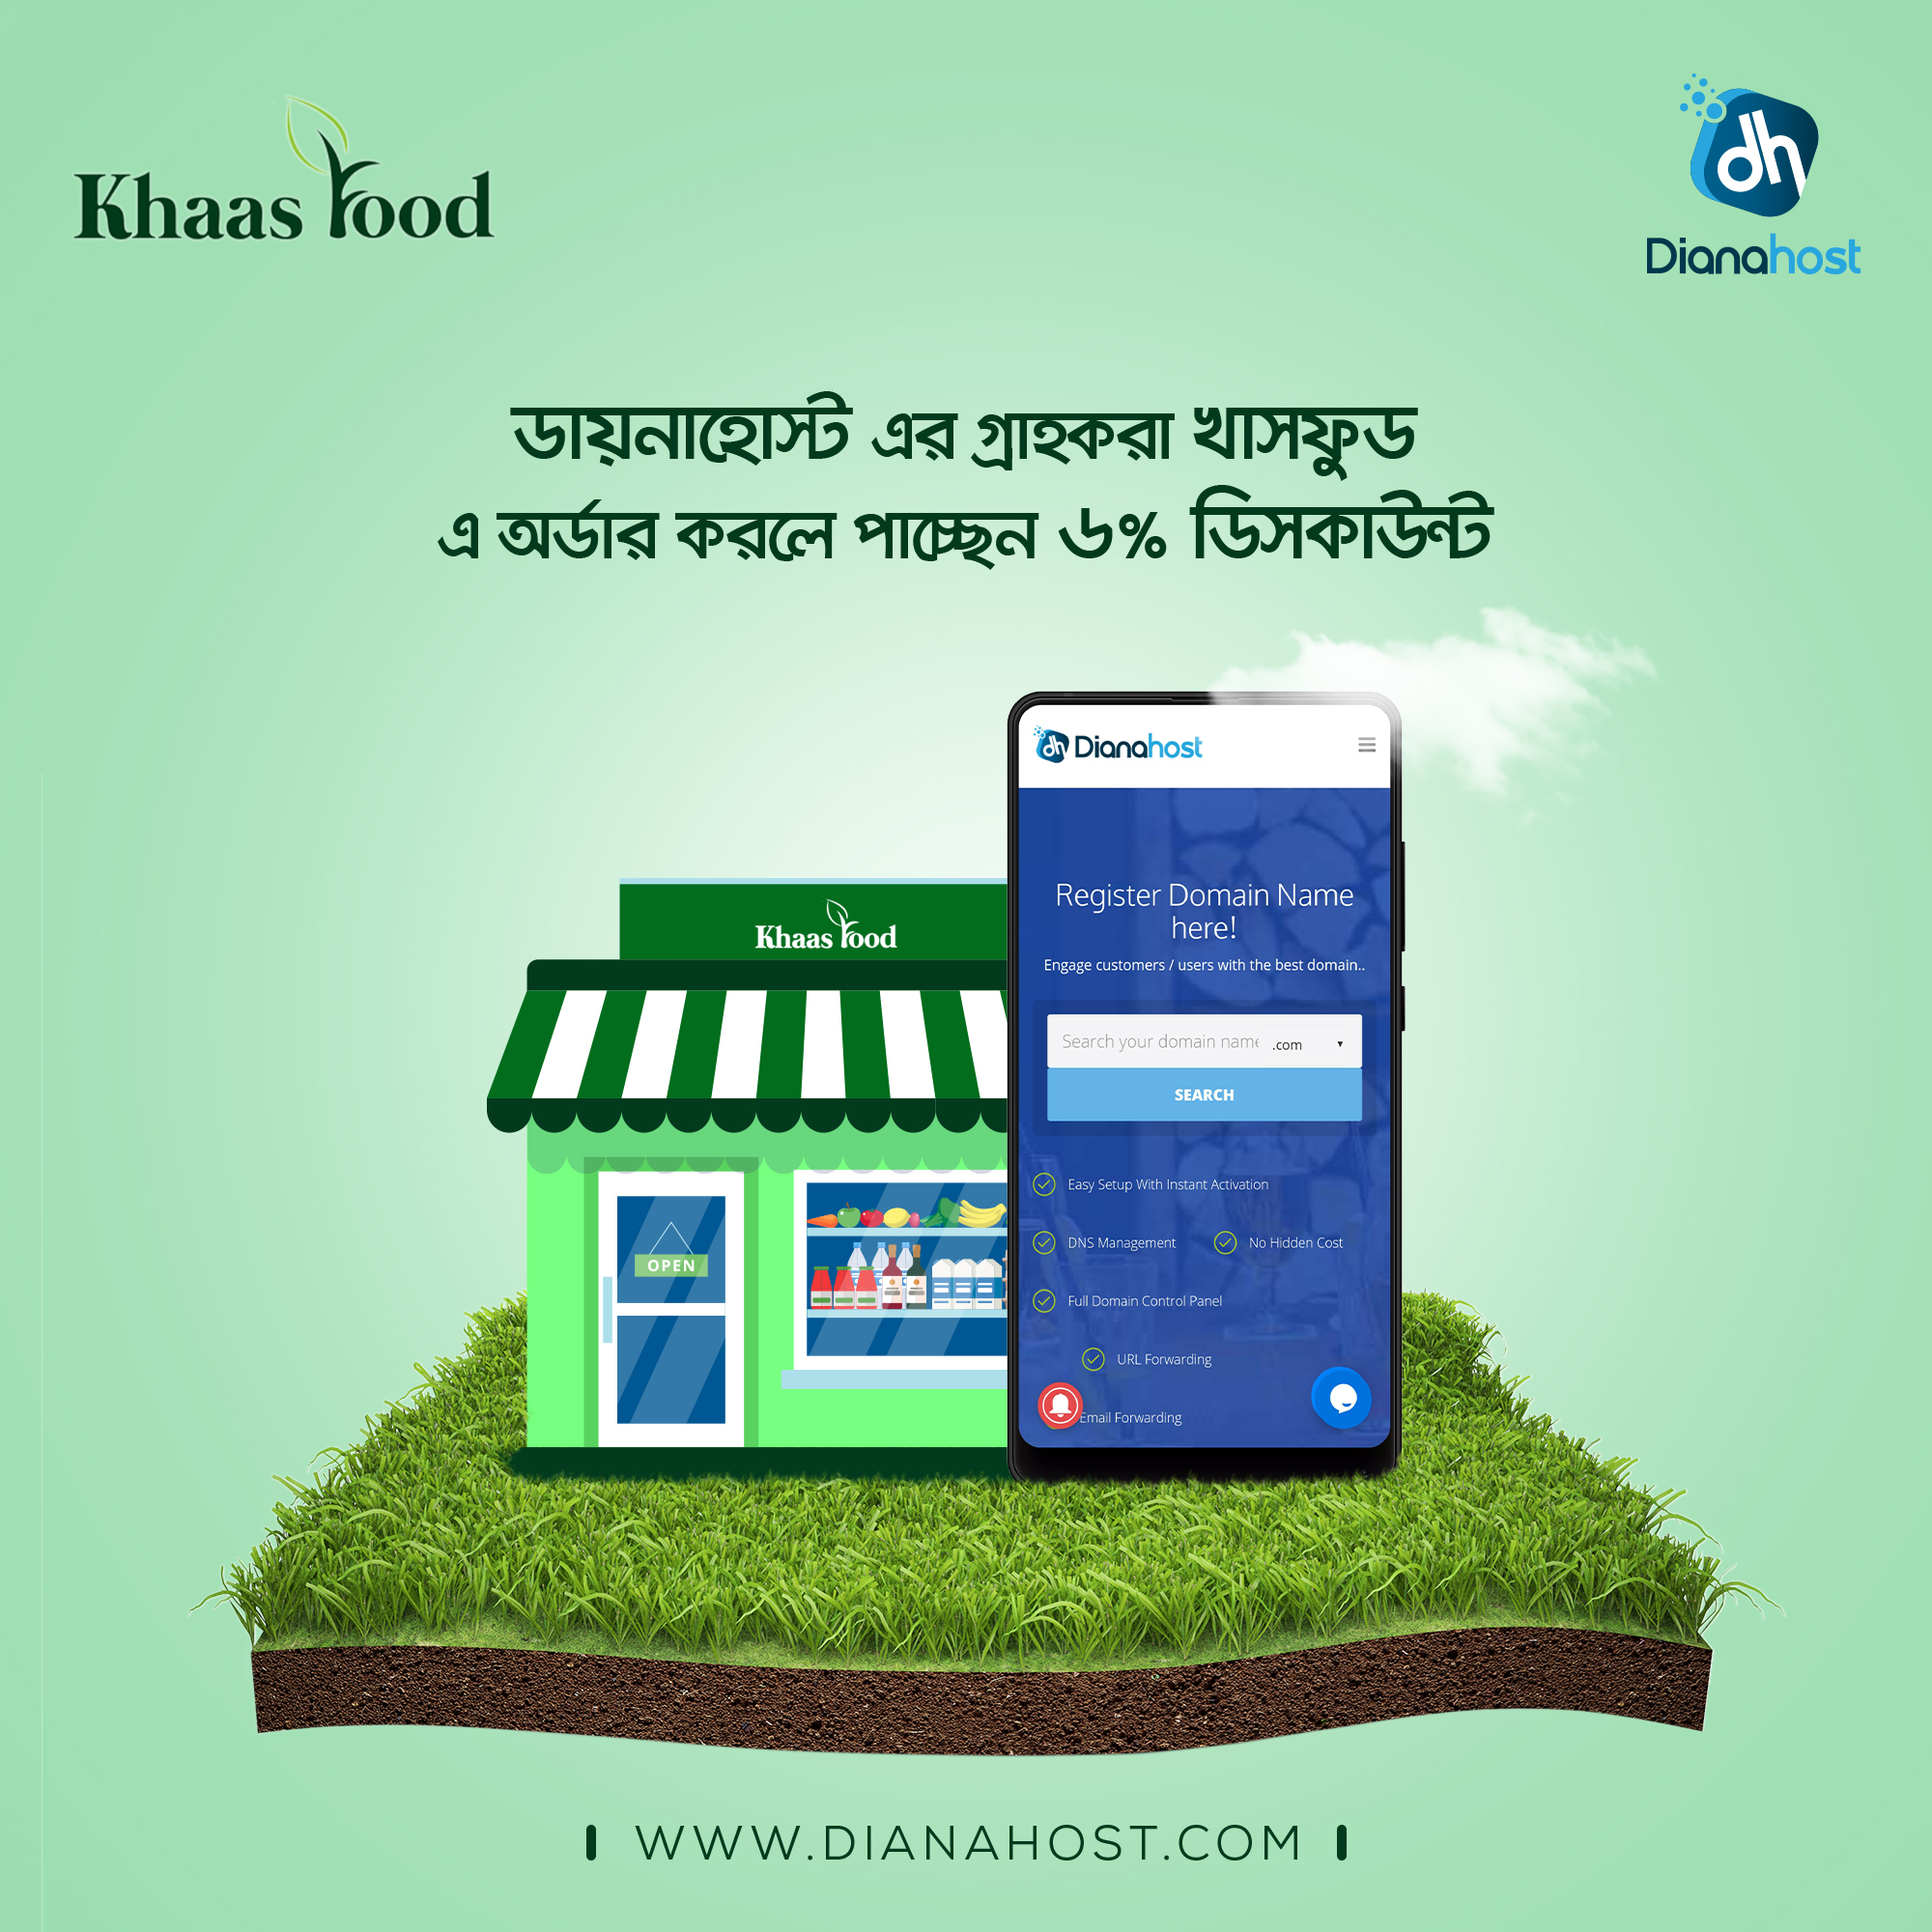 Khaas Food Discount Campaign for DianaHost Clients